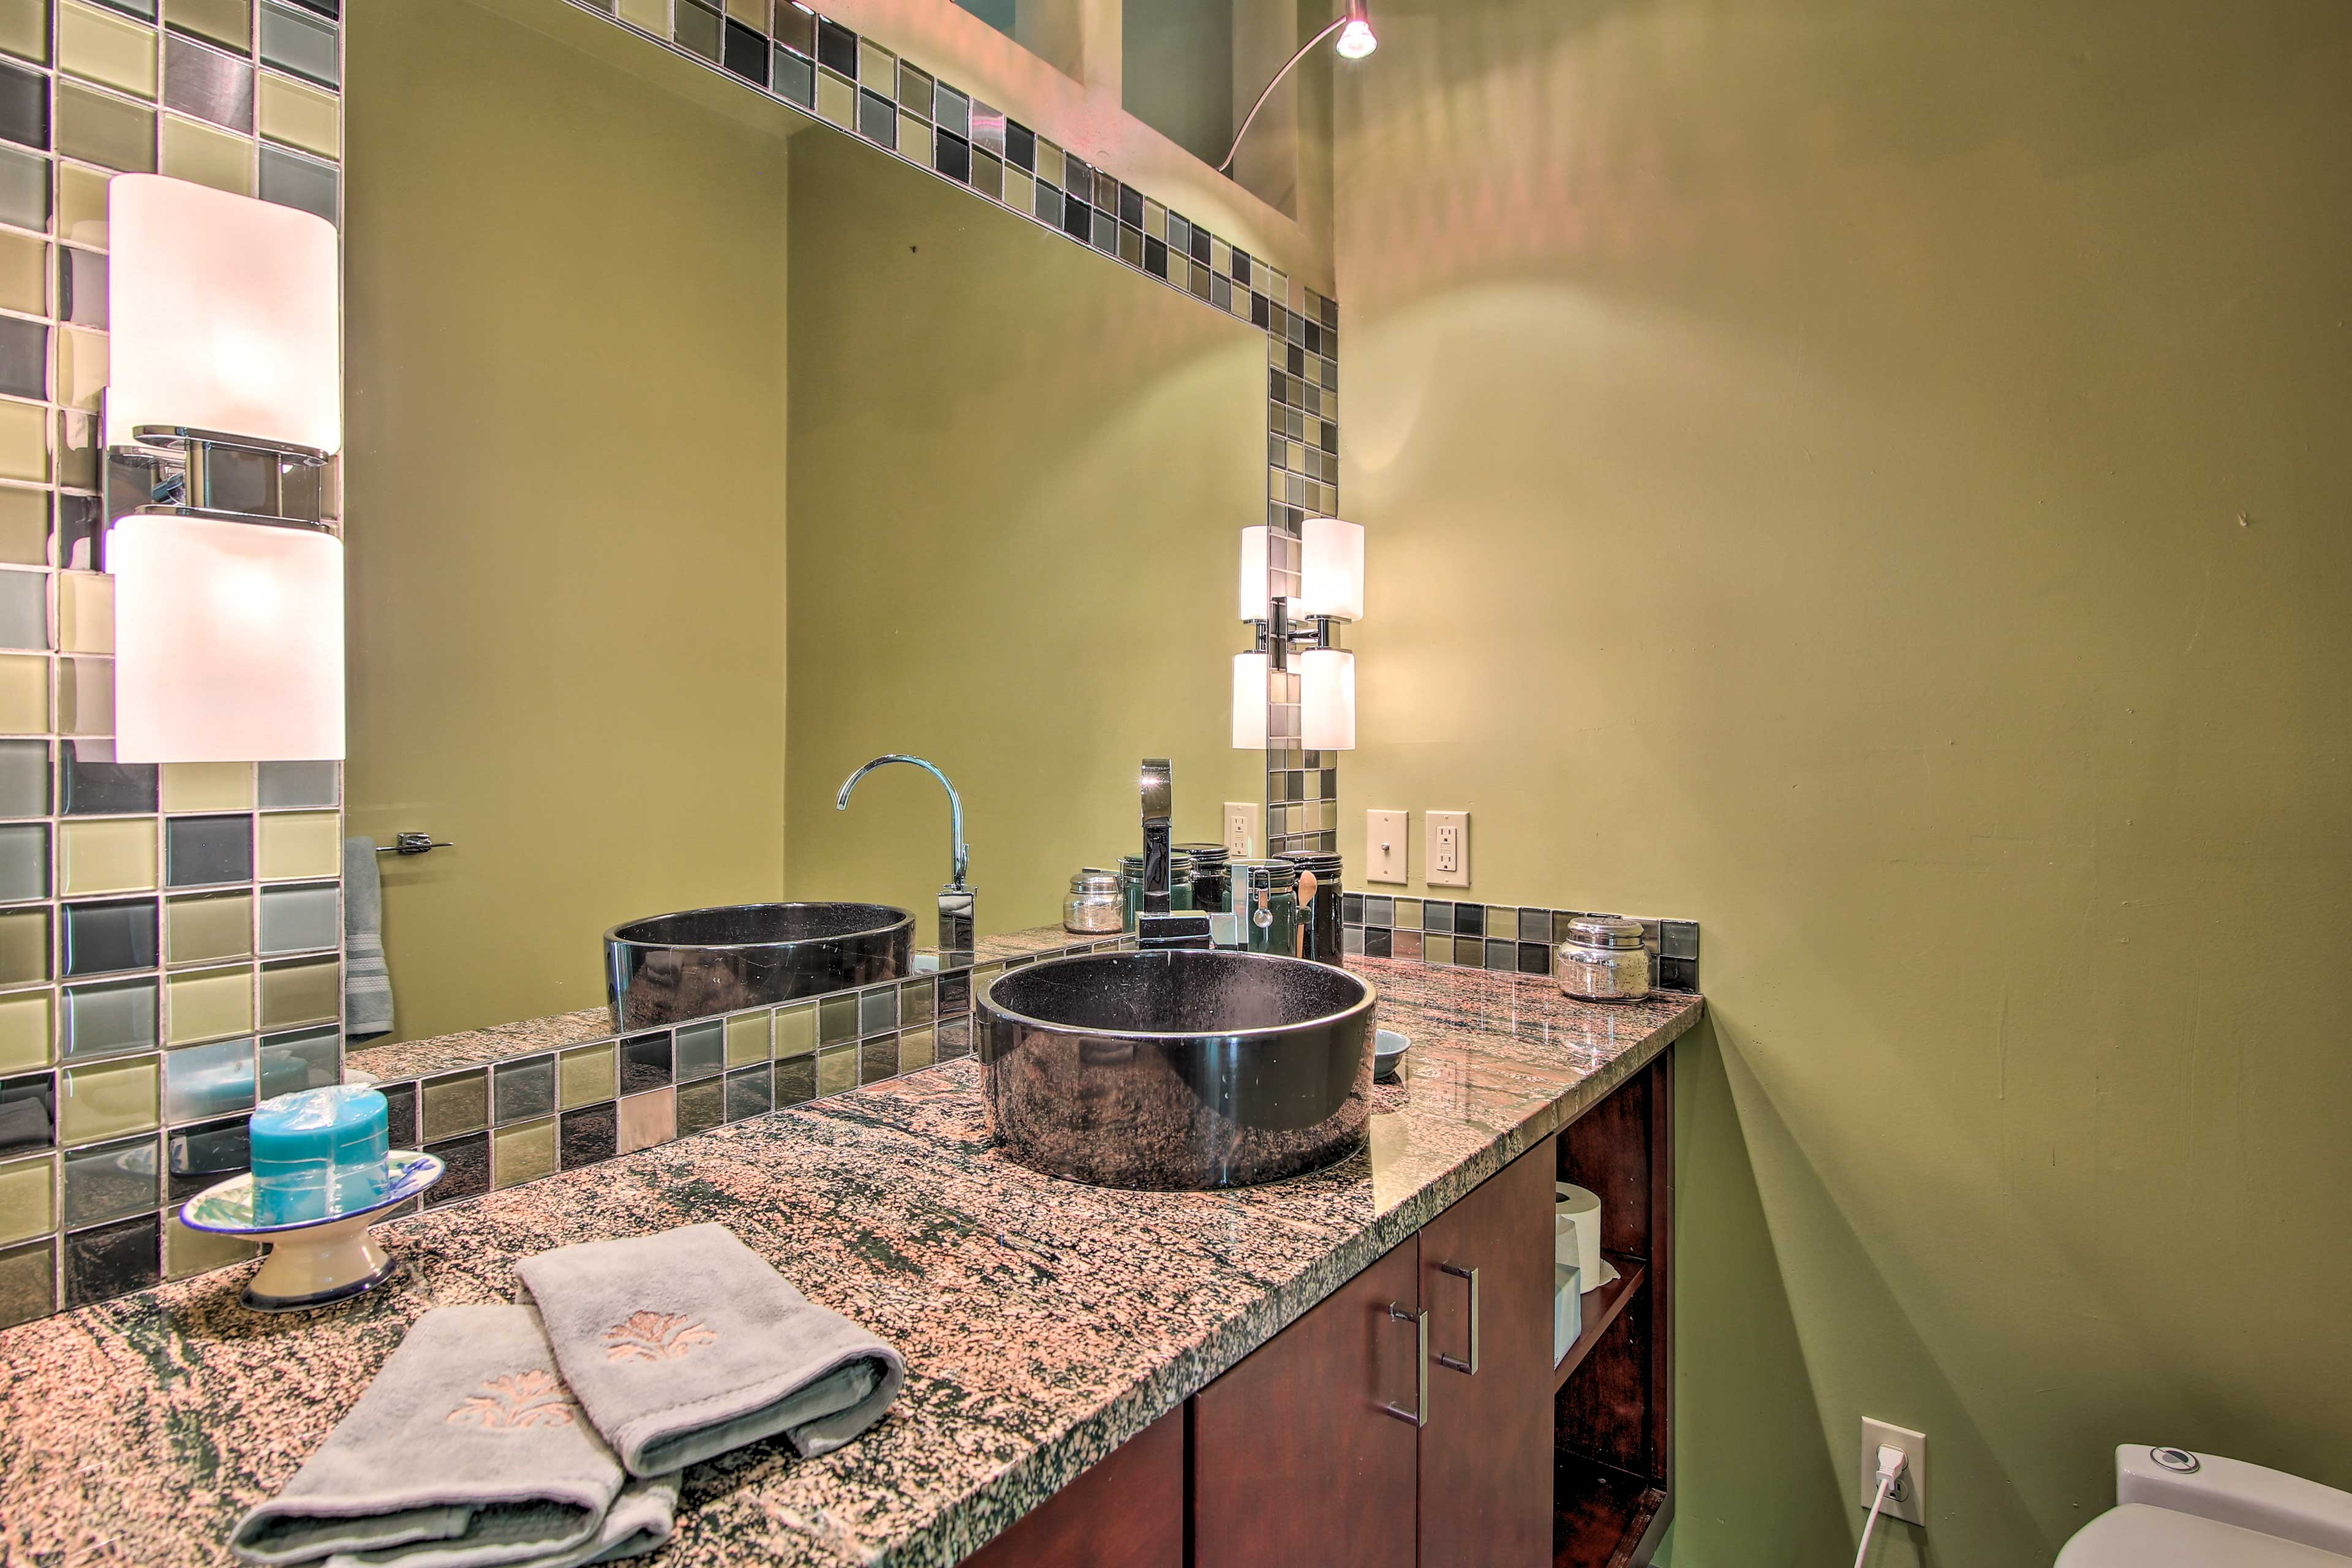 Rinse off in this full bathroom after your daily adventures.